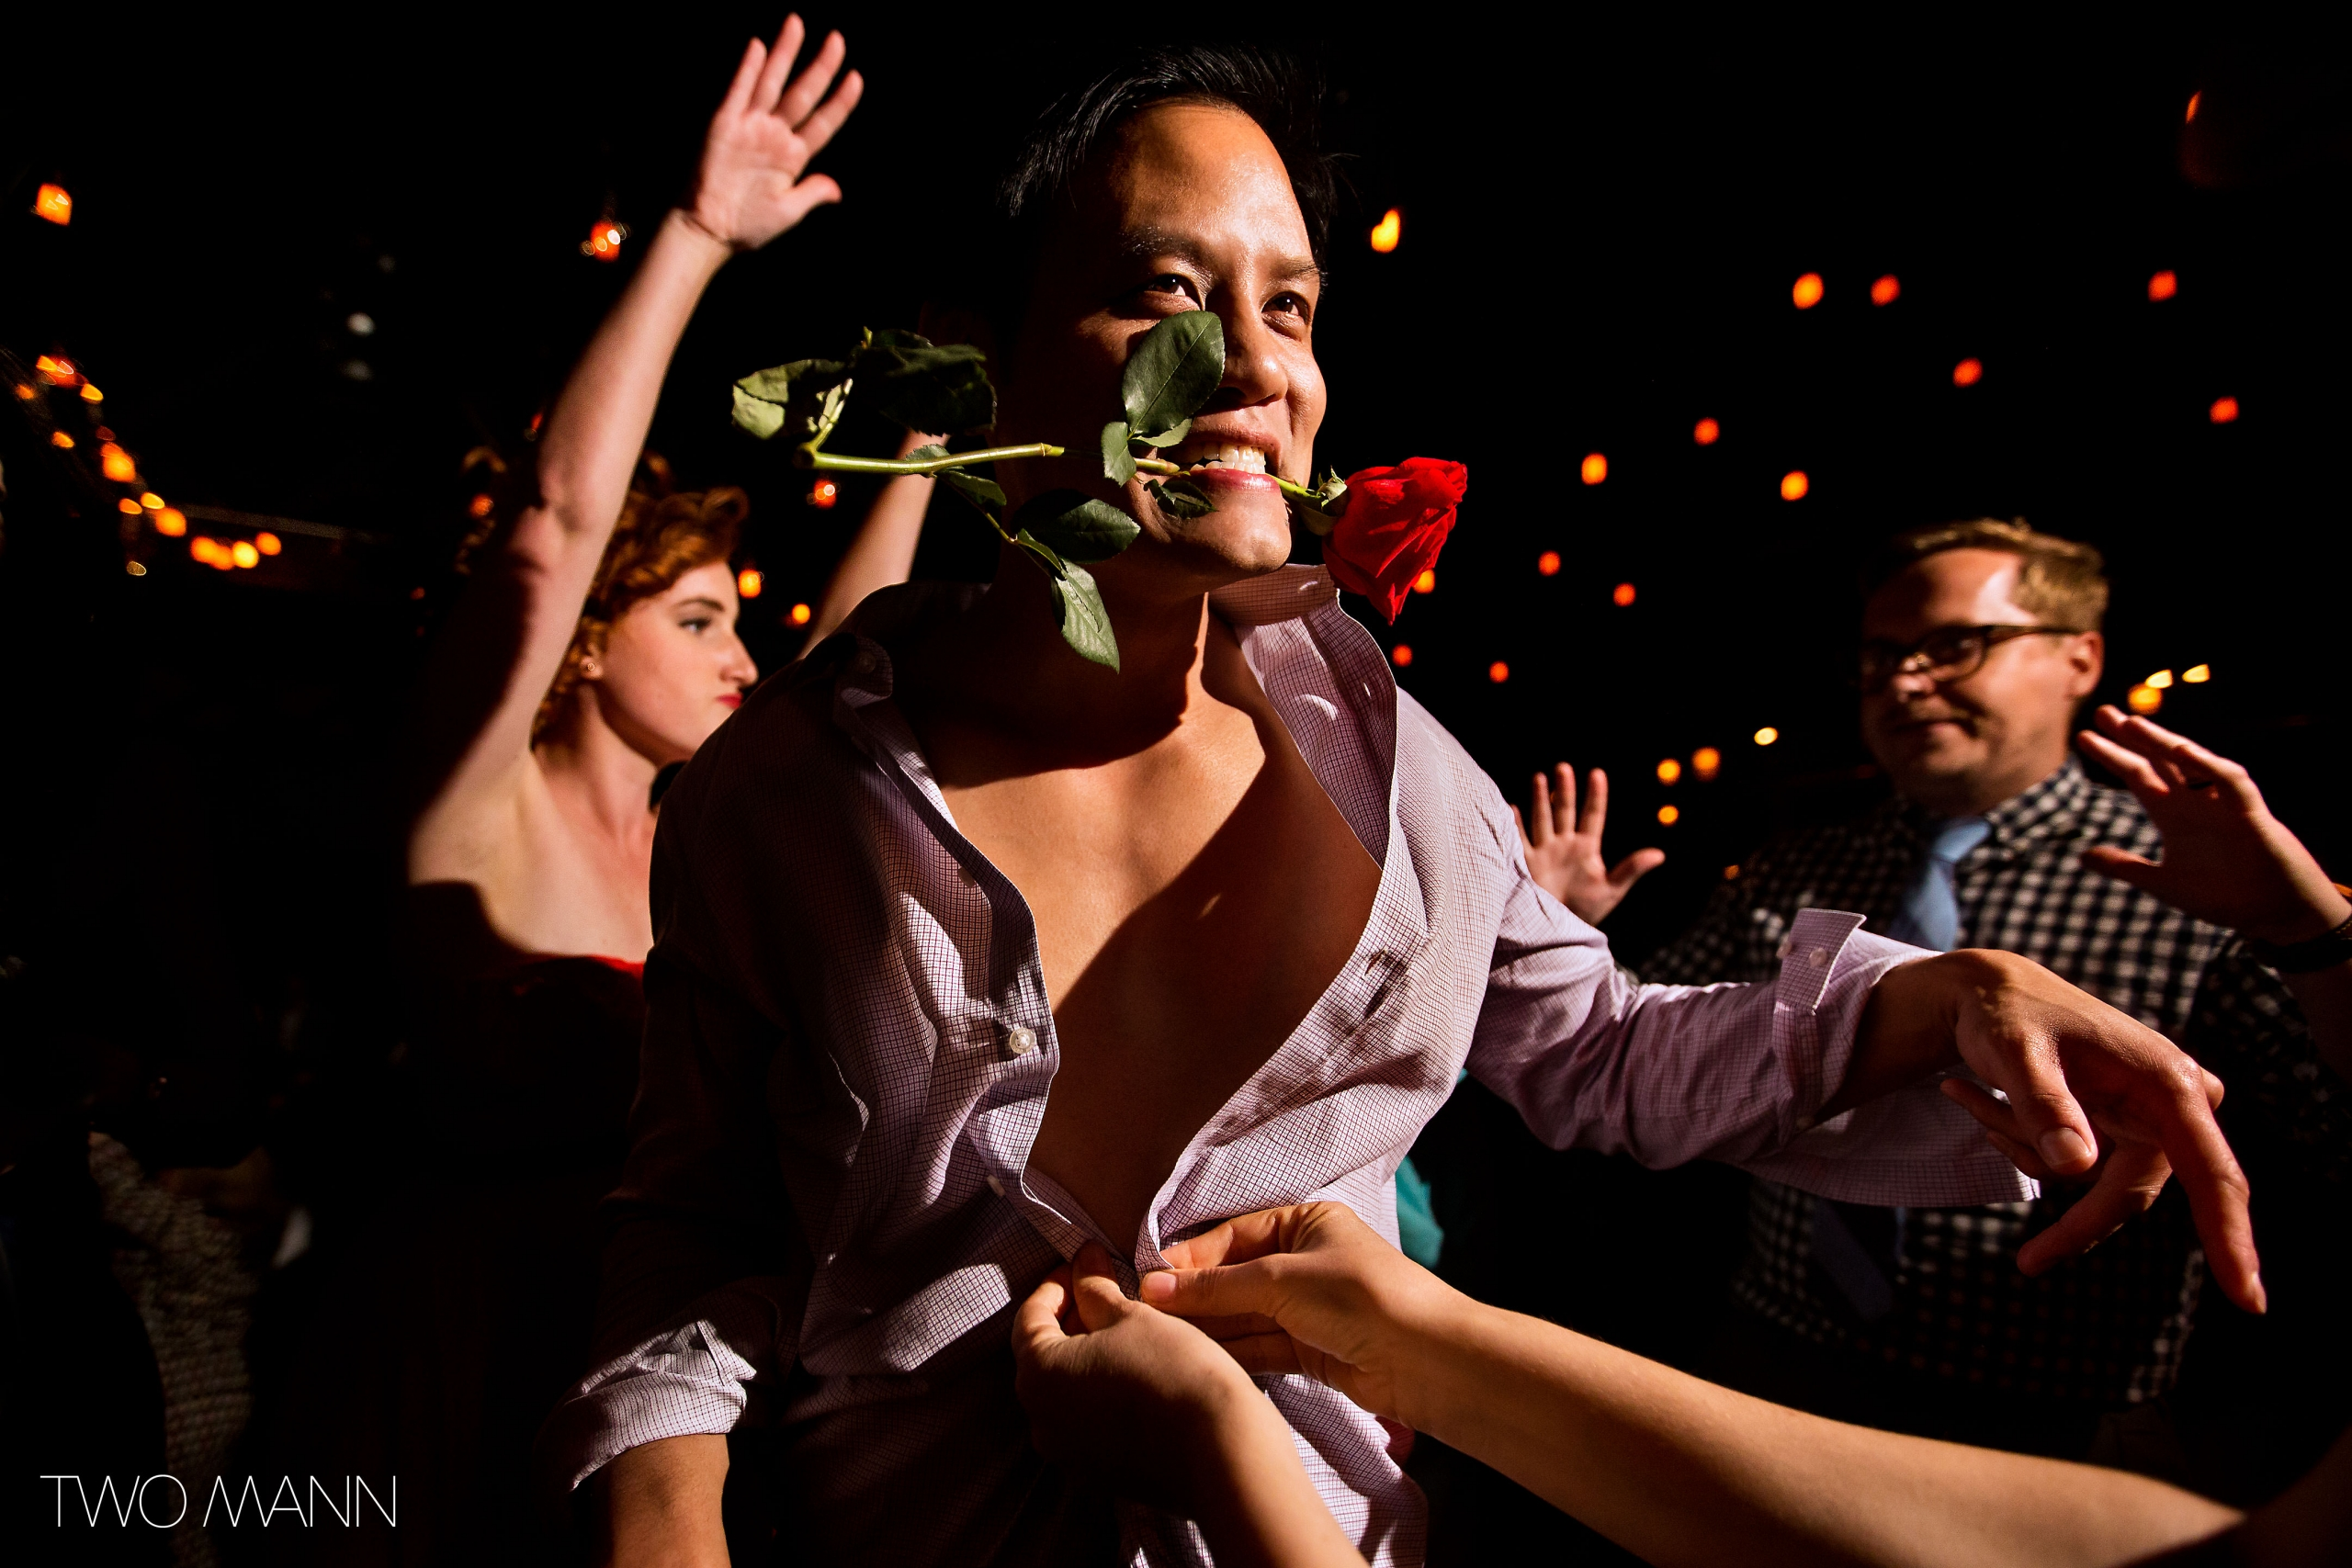 a young man on the dance floor with a red rose in mouth